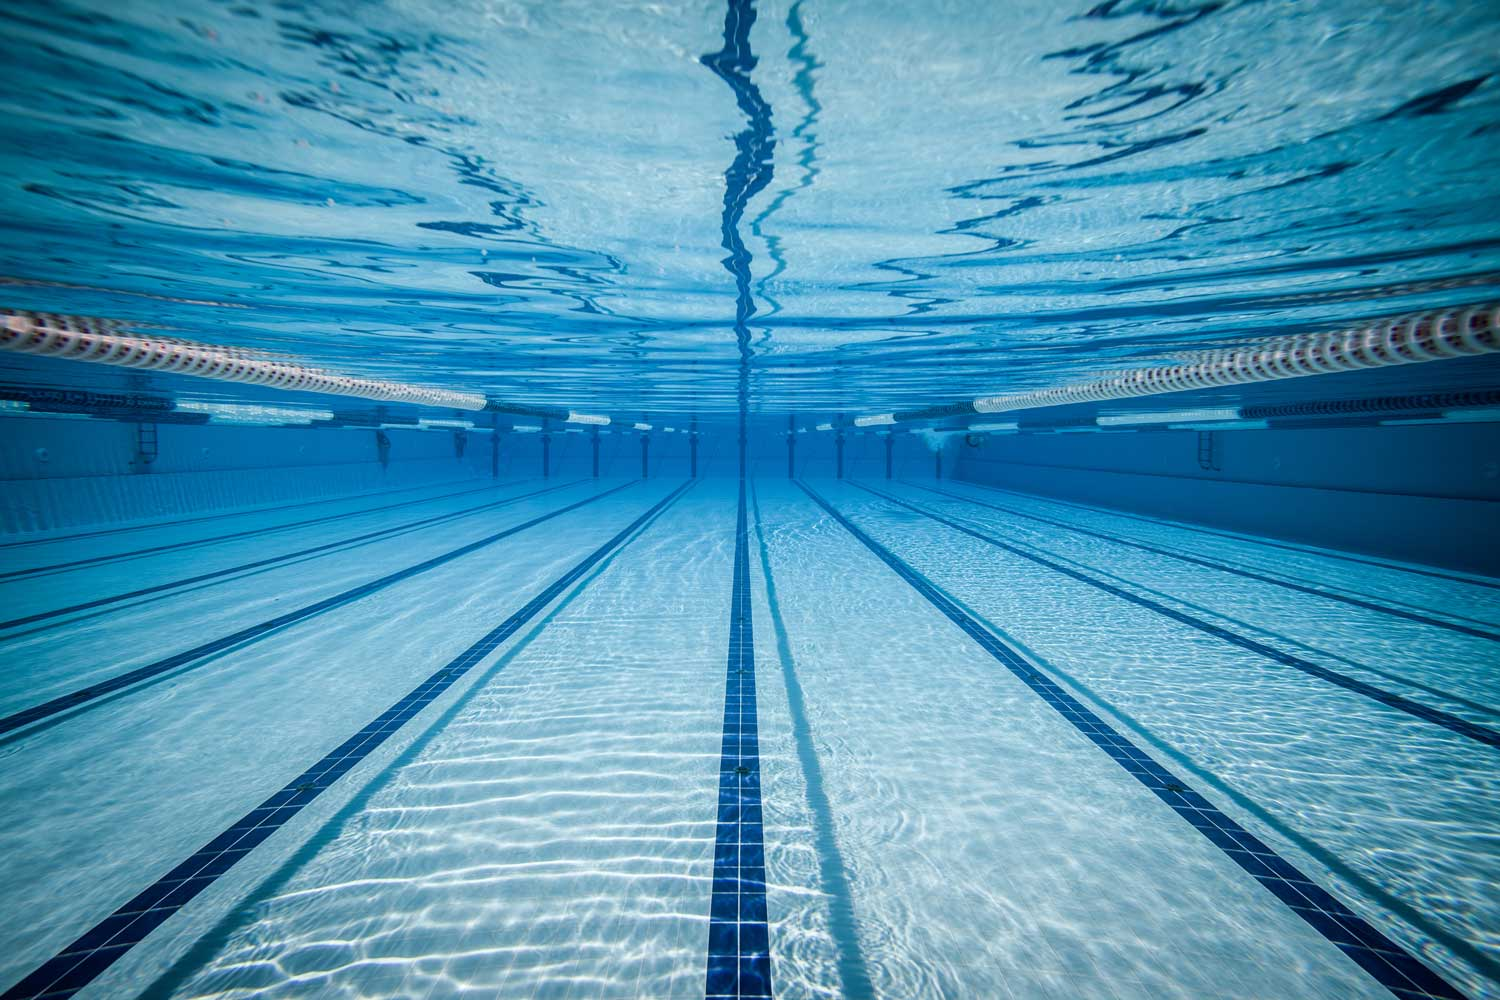 aquatic programs for all ages at jfk and sharpe jameskenneth agibson aquatic centers now through june